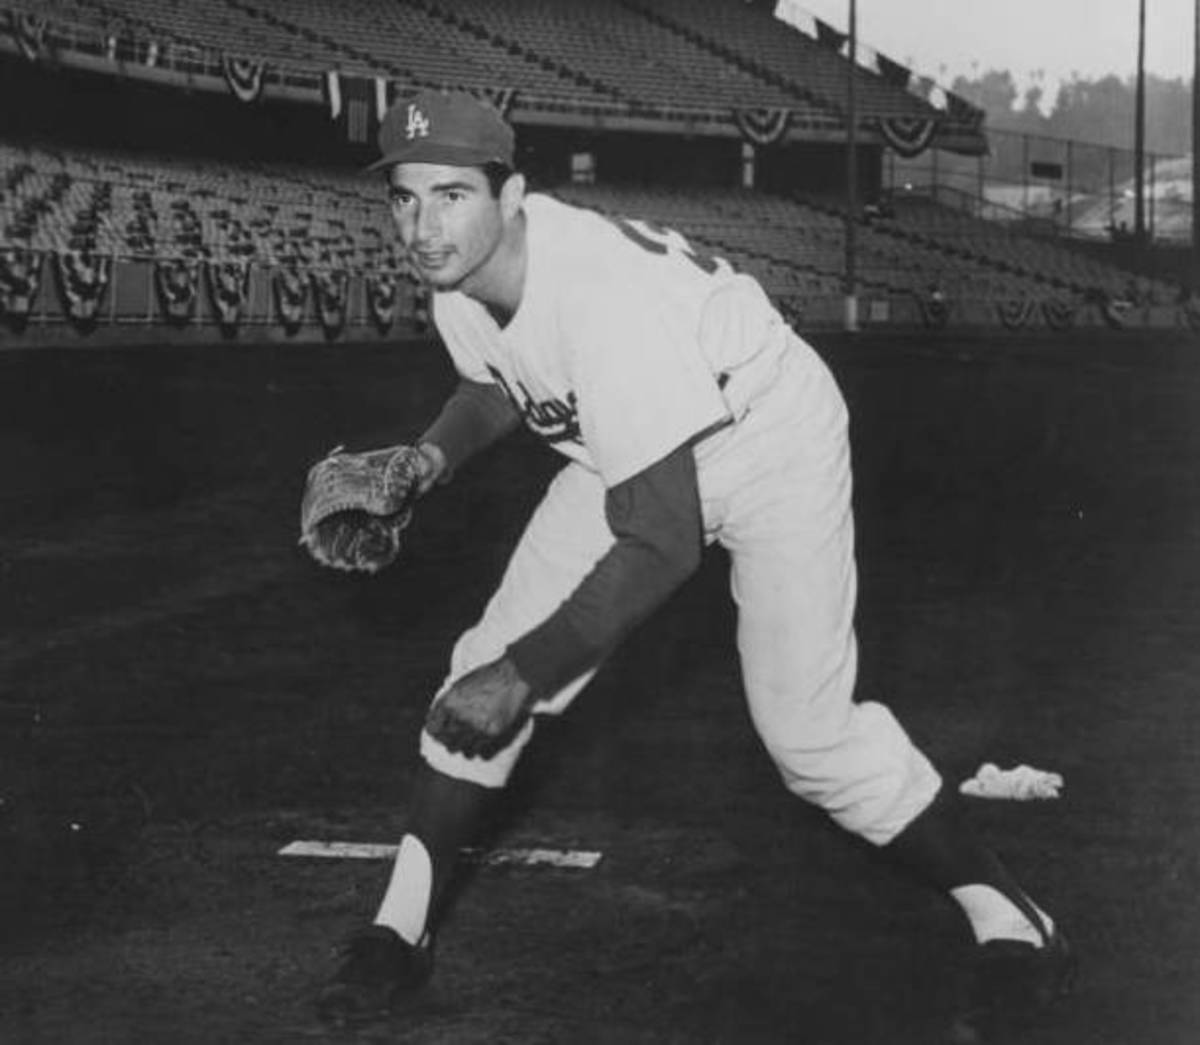 A young Sandy Koufax poses for a photo early in his career with the Los Angeles Dodgers. Despite an early retirement that left him with only a 12-year career, Koufax is regarded as one of the greatest left-handed pitchers in baseball history.